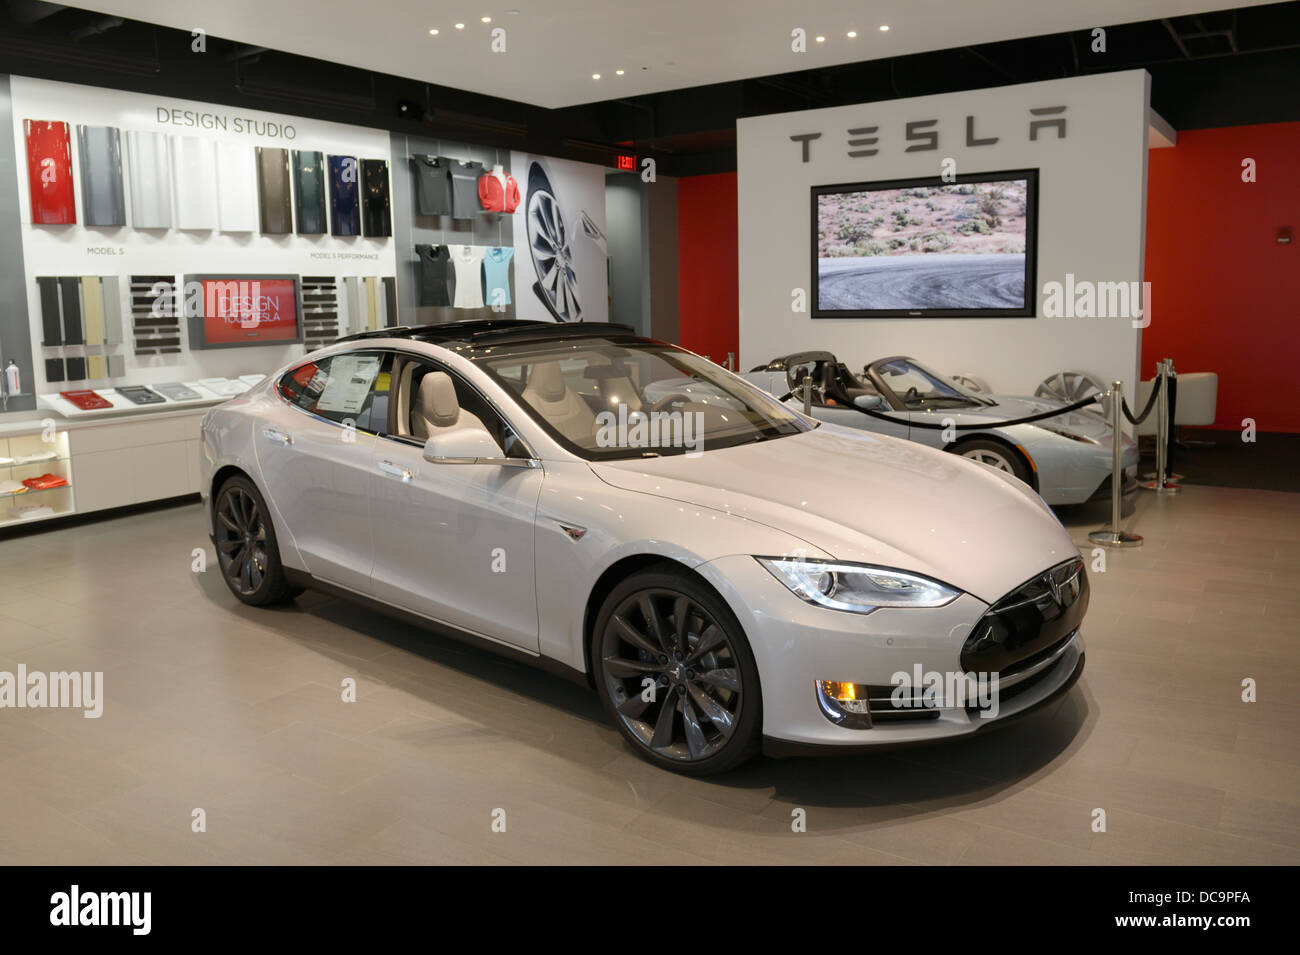 Tesla electric car dealer (retail store) in a shopping mall, NJ, USA with Model S sedan - Stock Image